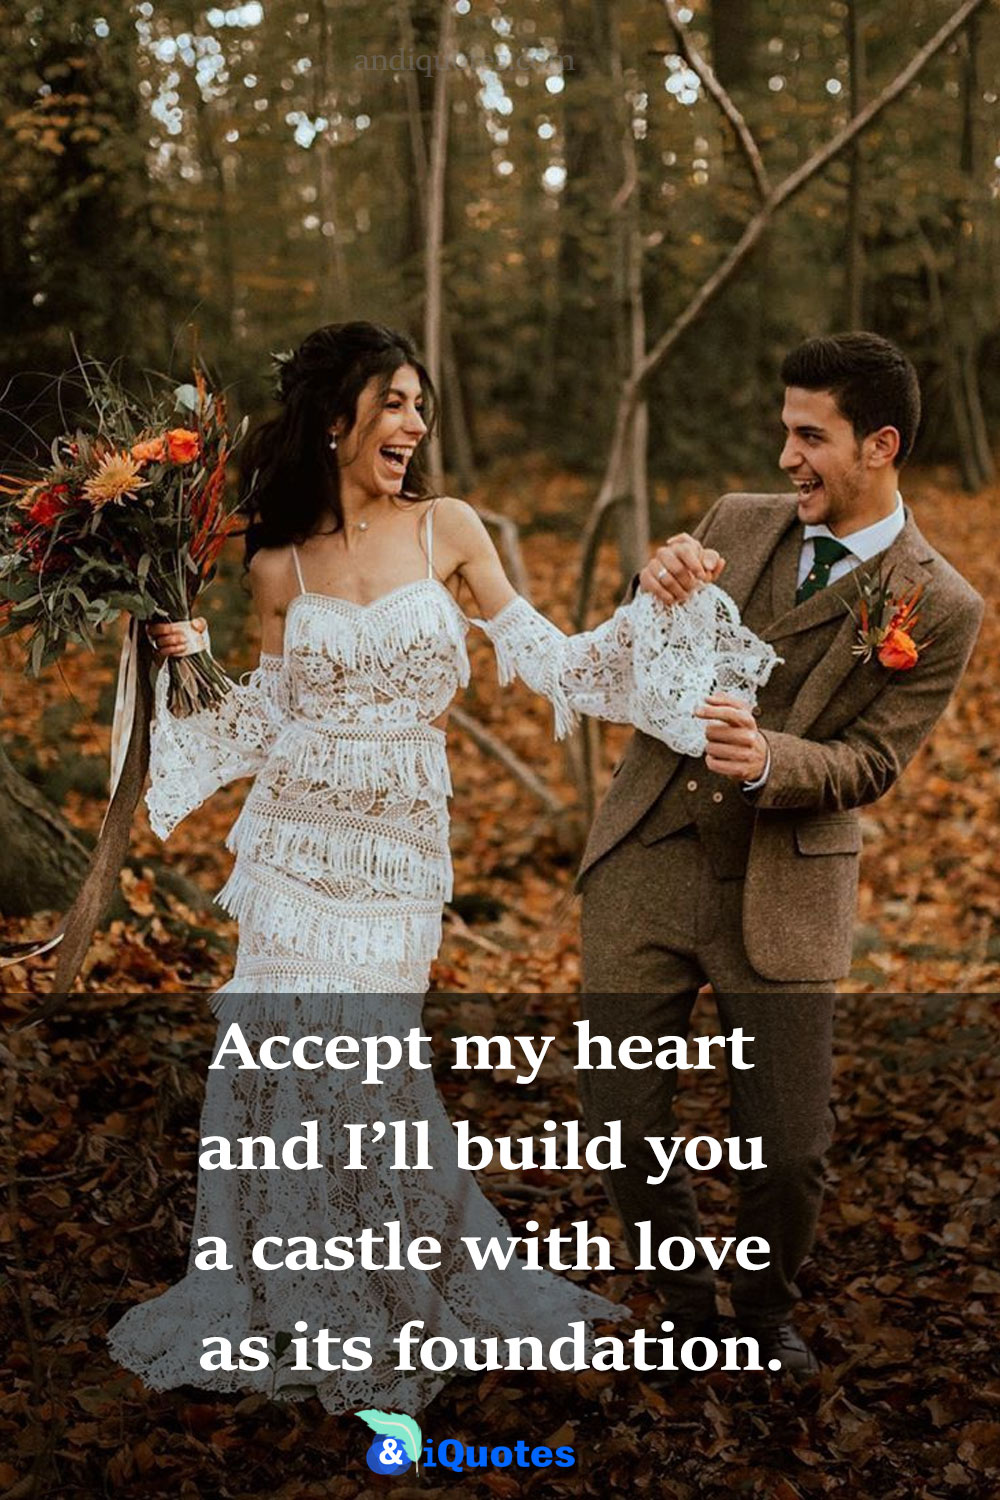 Accept my heart and I'll build you a castle with love as its foundation.